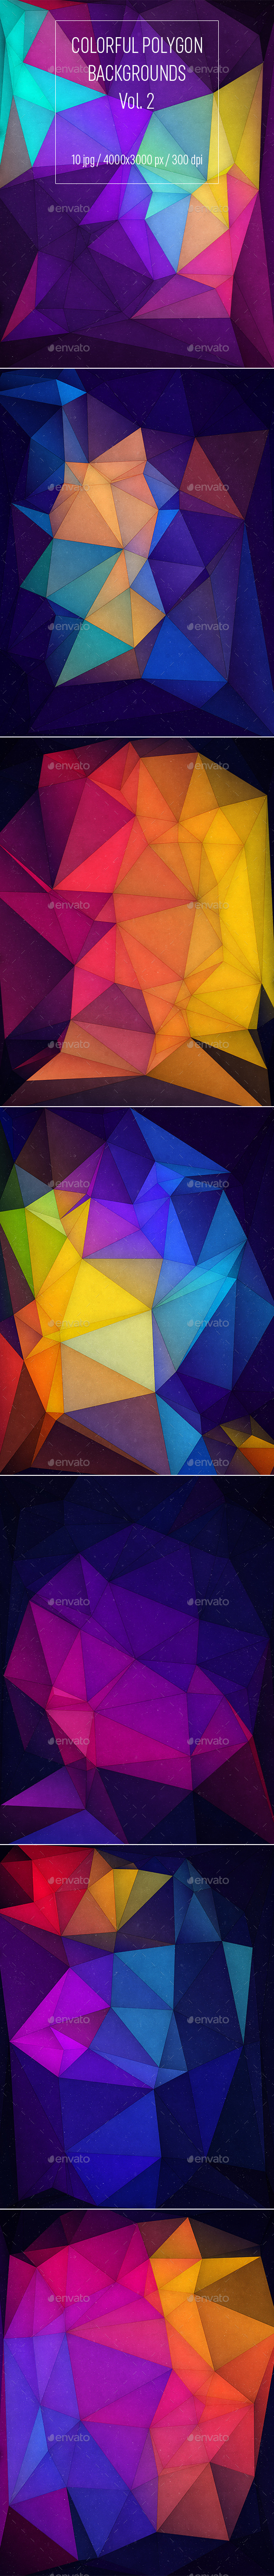 Colorful Polygon Backgrounds Vol.2 - Abstract Backgrounds